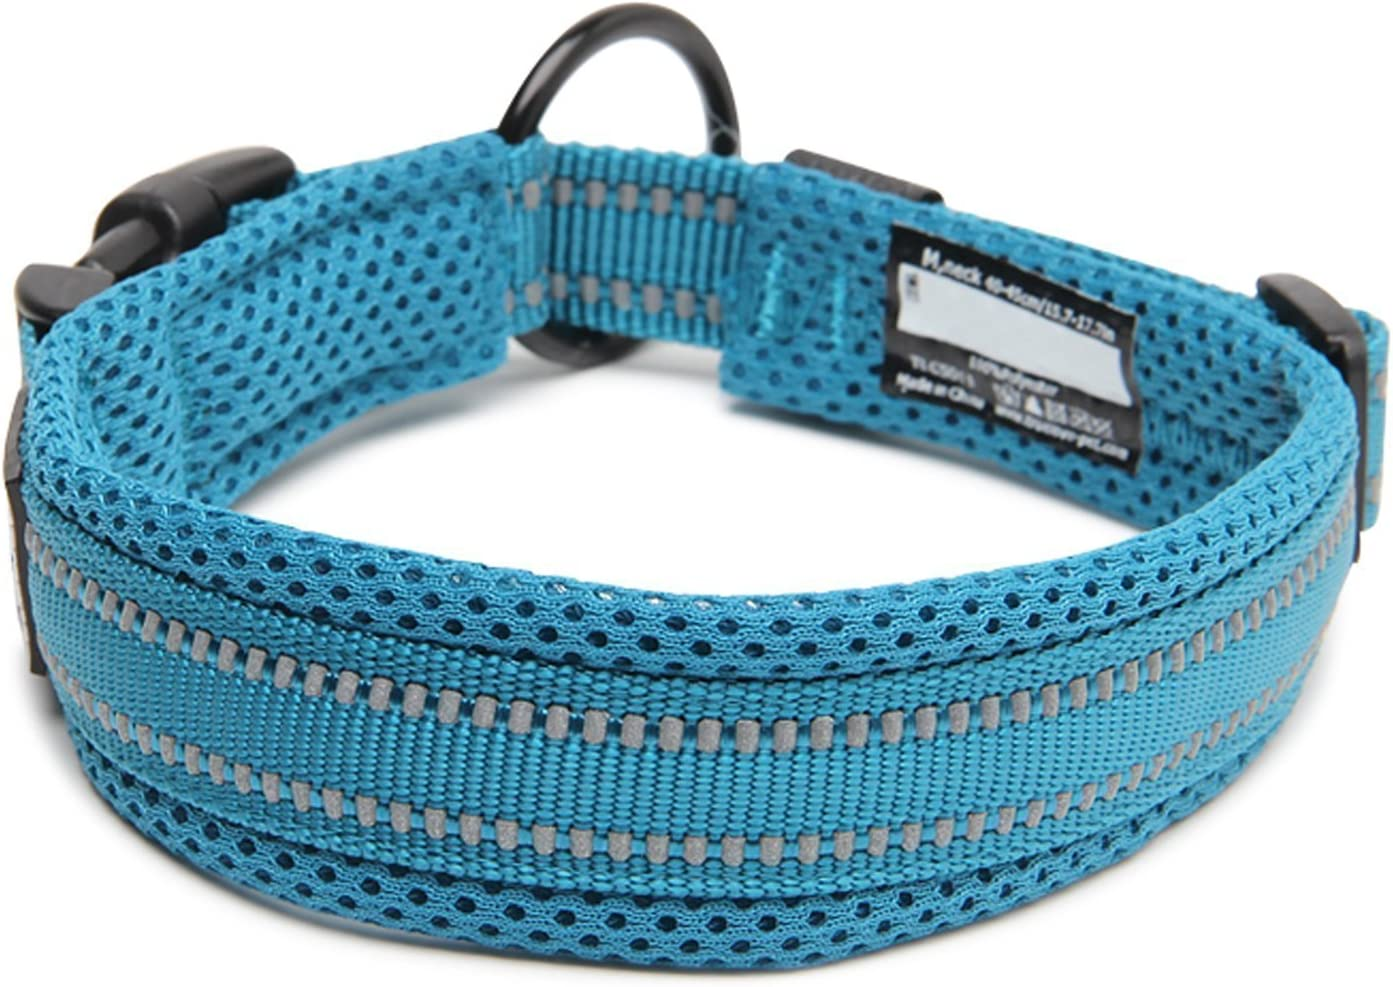 Neck 35-40cm Comfy And Soft Adjustable Collar For Small//Medium//Large Dogs #3 S Vivi Bear Padded 3M Night Vision Reflective Stripes Soft Breathable Mesh Dogs Collar Easy Buckle Design Green 8 Sizes